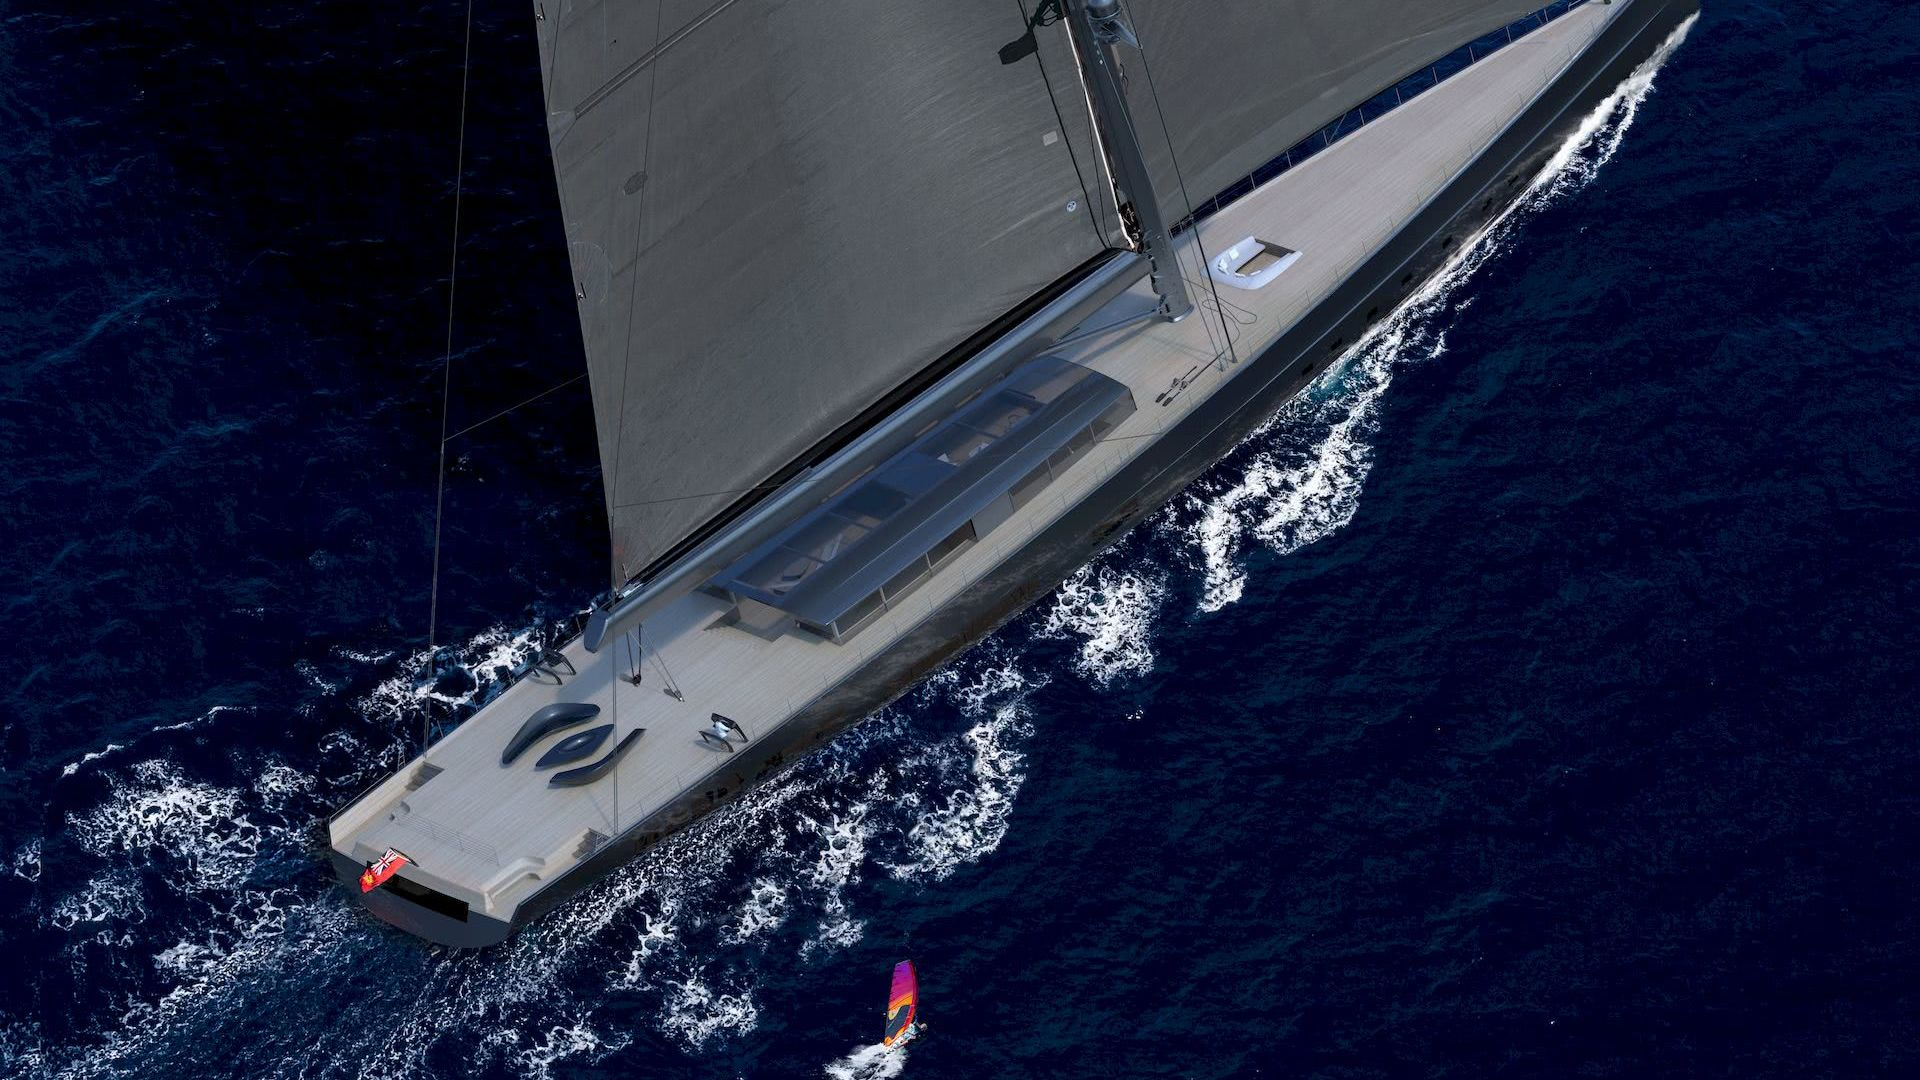 Apex 850 Sailing Yacht Biggest Sloop Yacht in the World